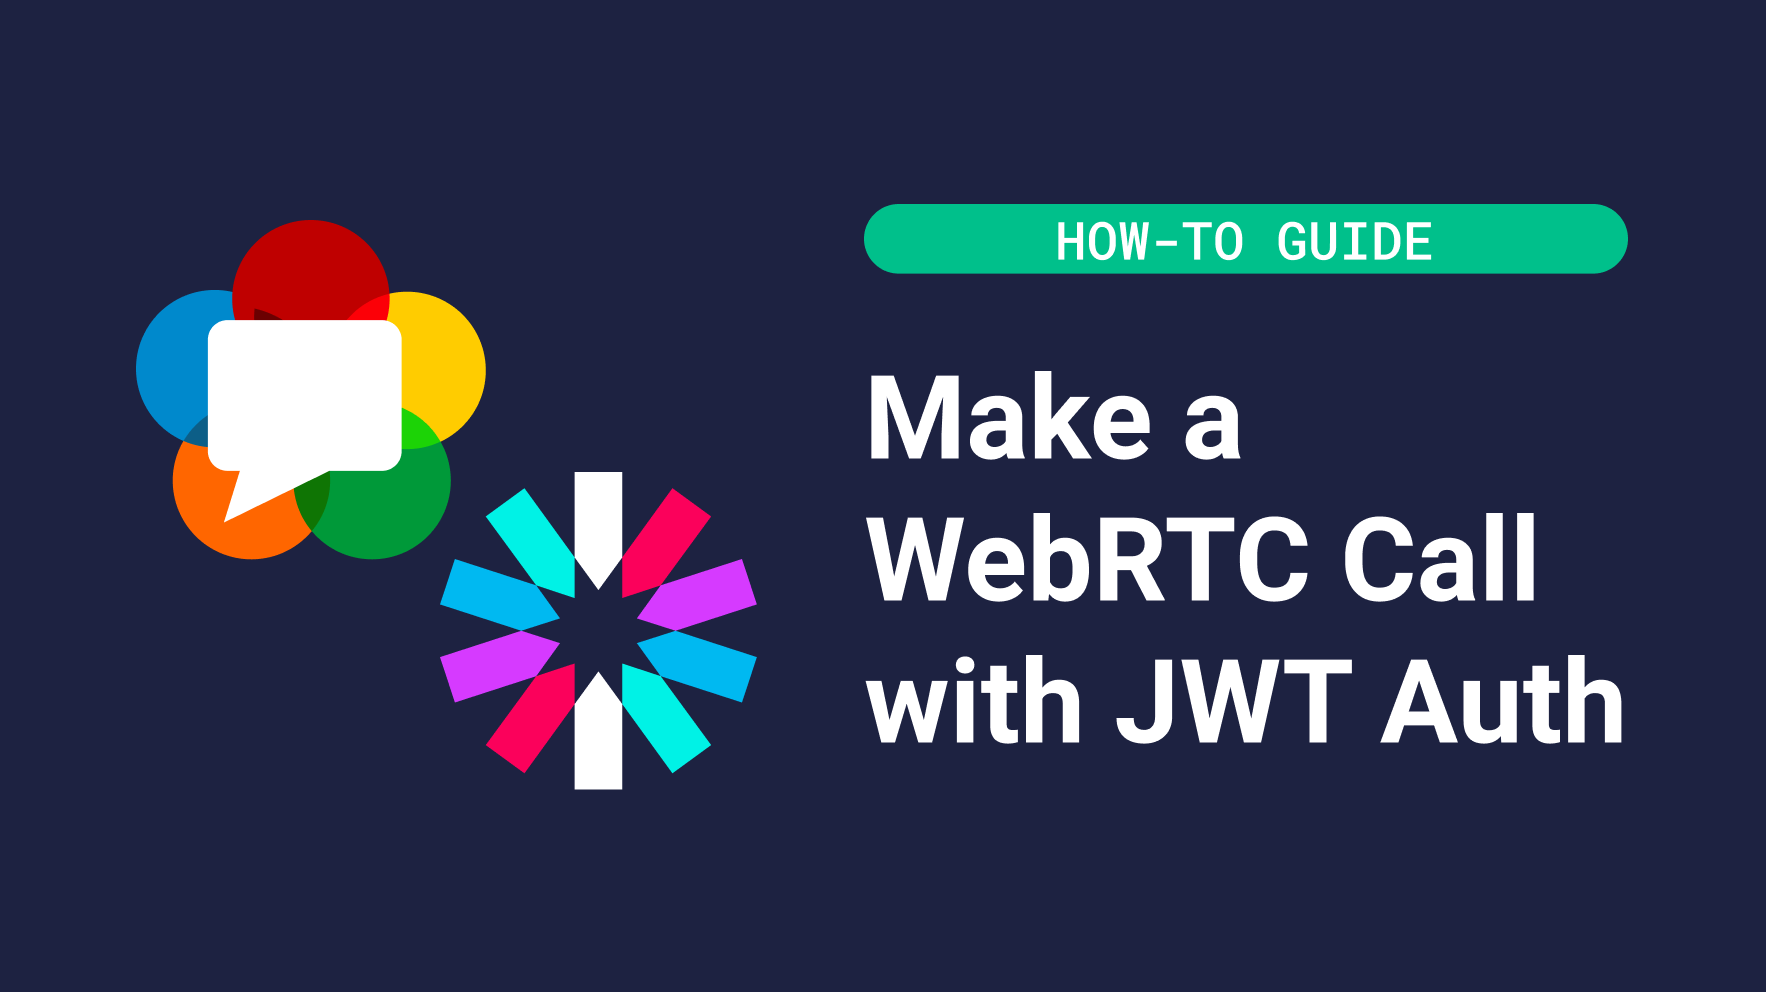 Make a WebRTC call with JWT authentication banner